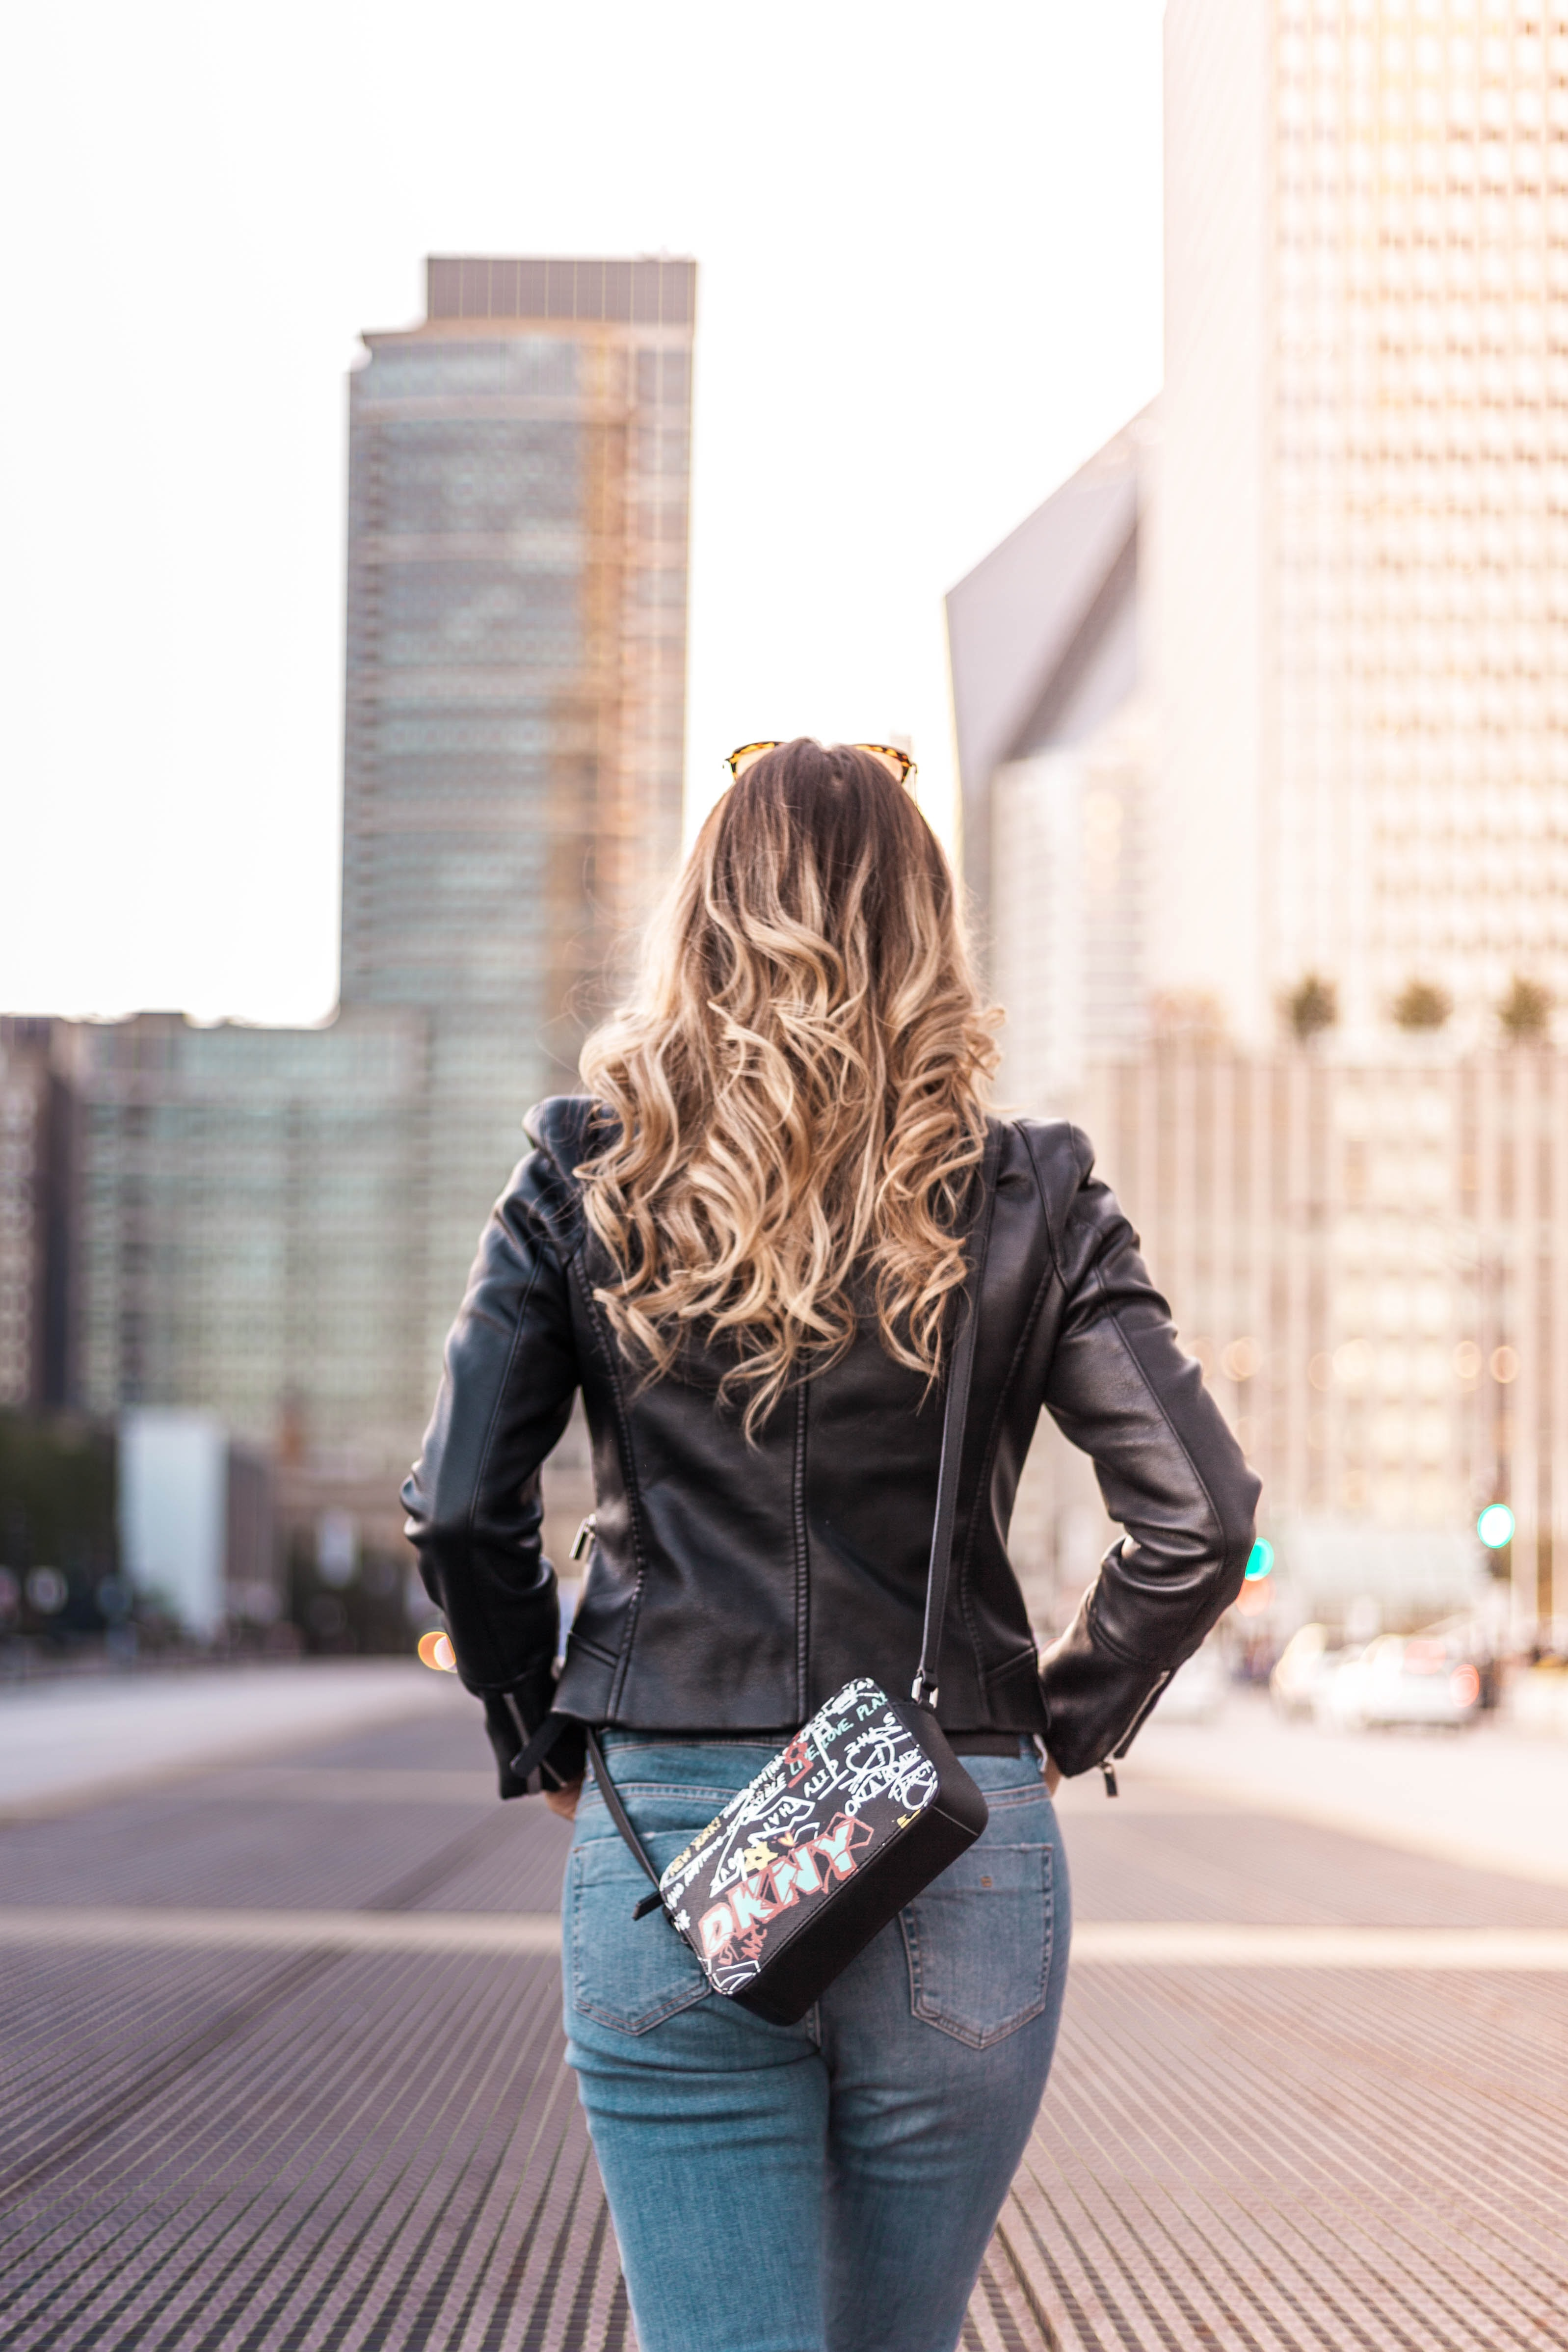 woman wearing black leather jacket and blue denim bottoms standing on gray concrete surface near buildings during daytime